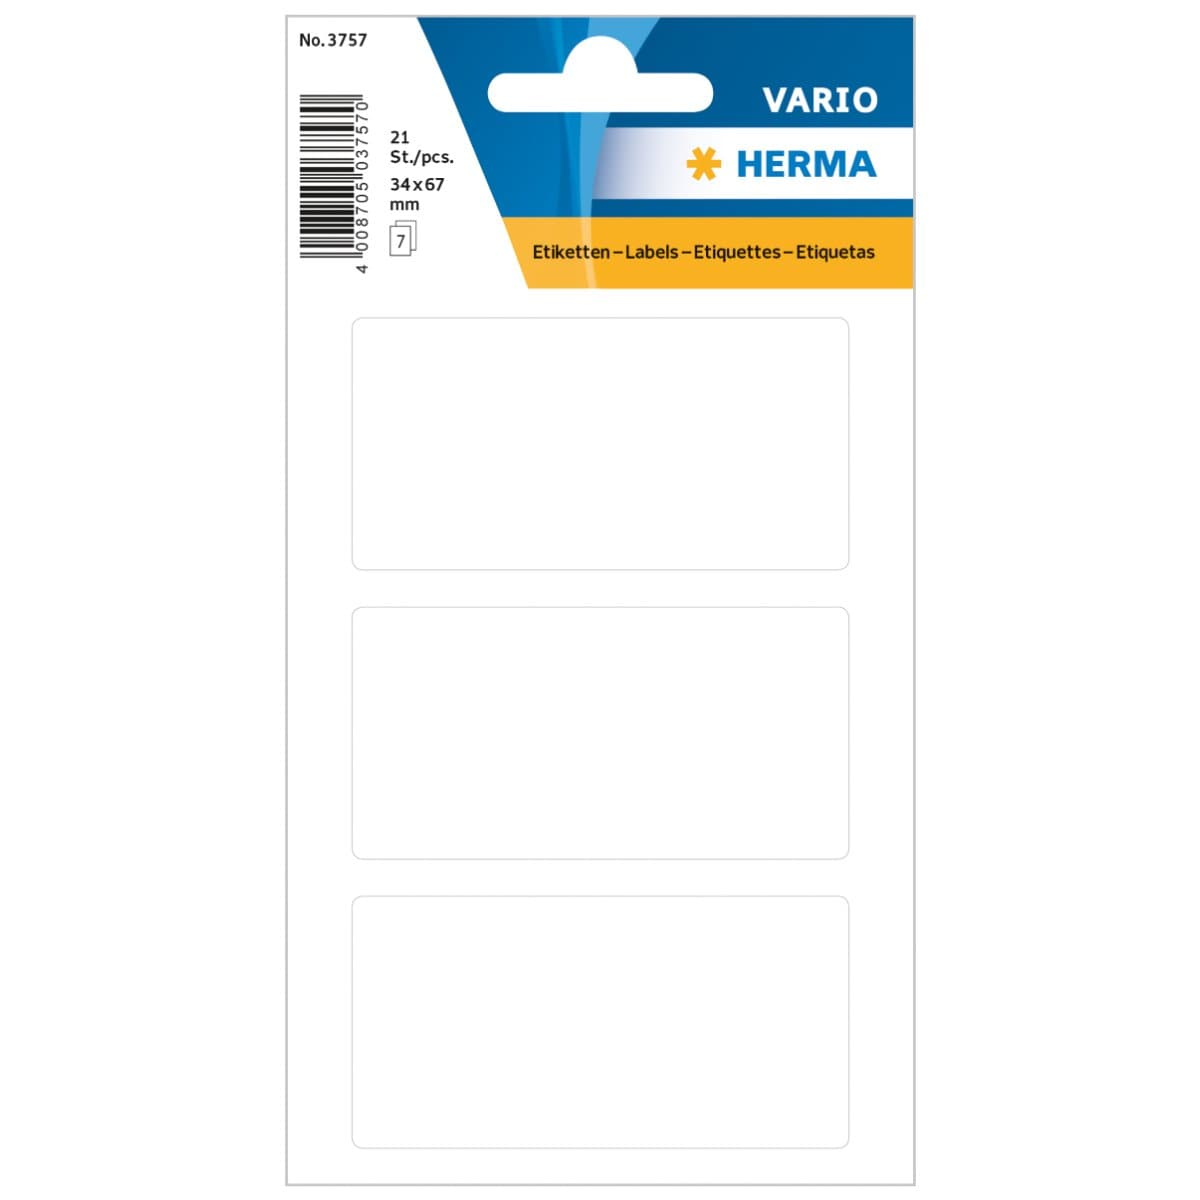 Herma Vario Sticker Labels, 34 x 67 mm, 21/pack, White